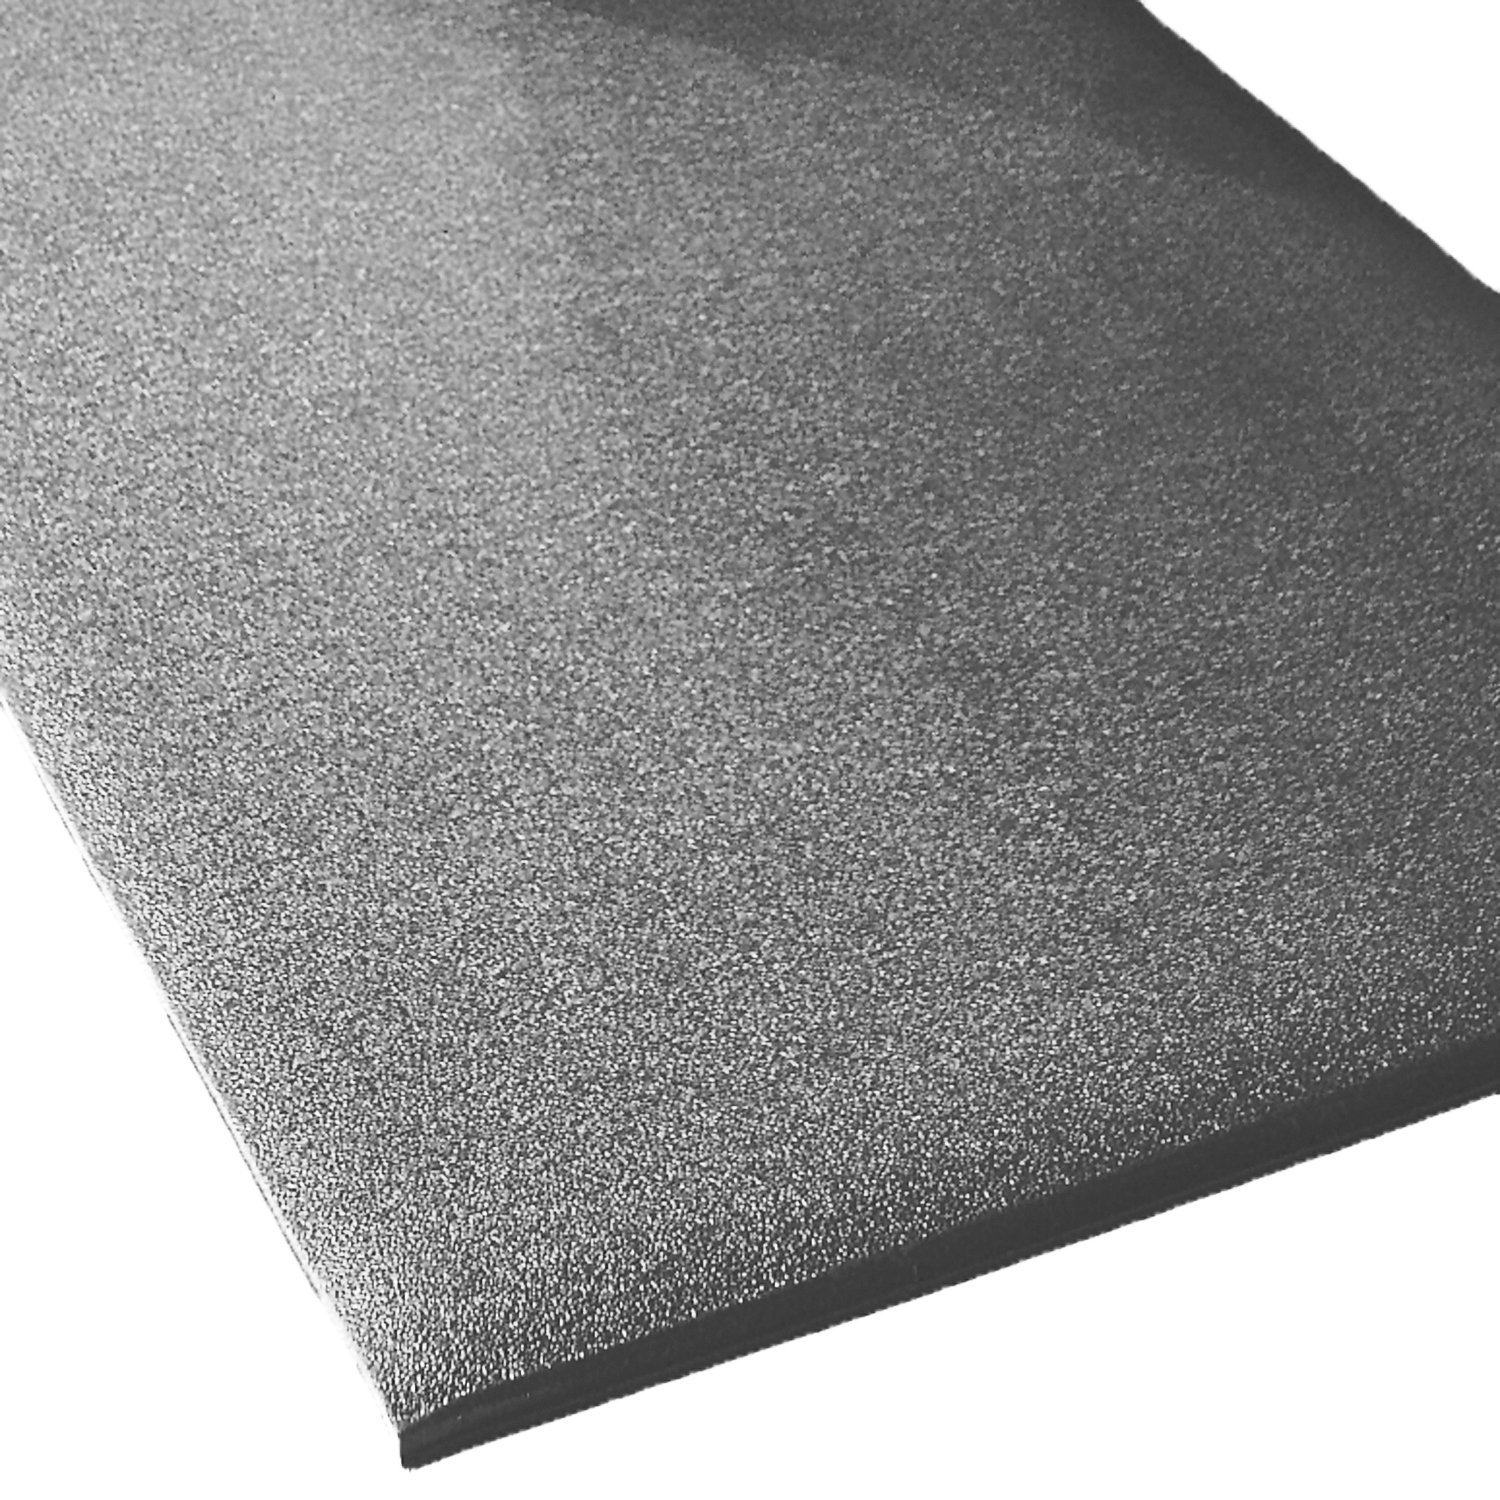 Rhino Mats CSE-3660 Comfort Step ESD Static Dissipative Anti-Fatigue Mat, 3' Width x 5' Length x 3/8'' Thickness, Gray